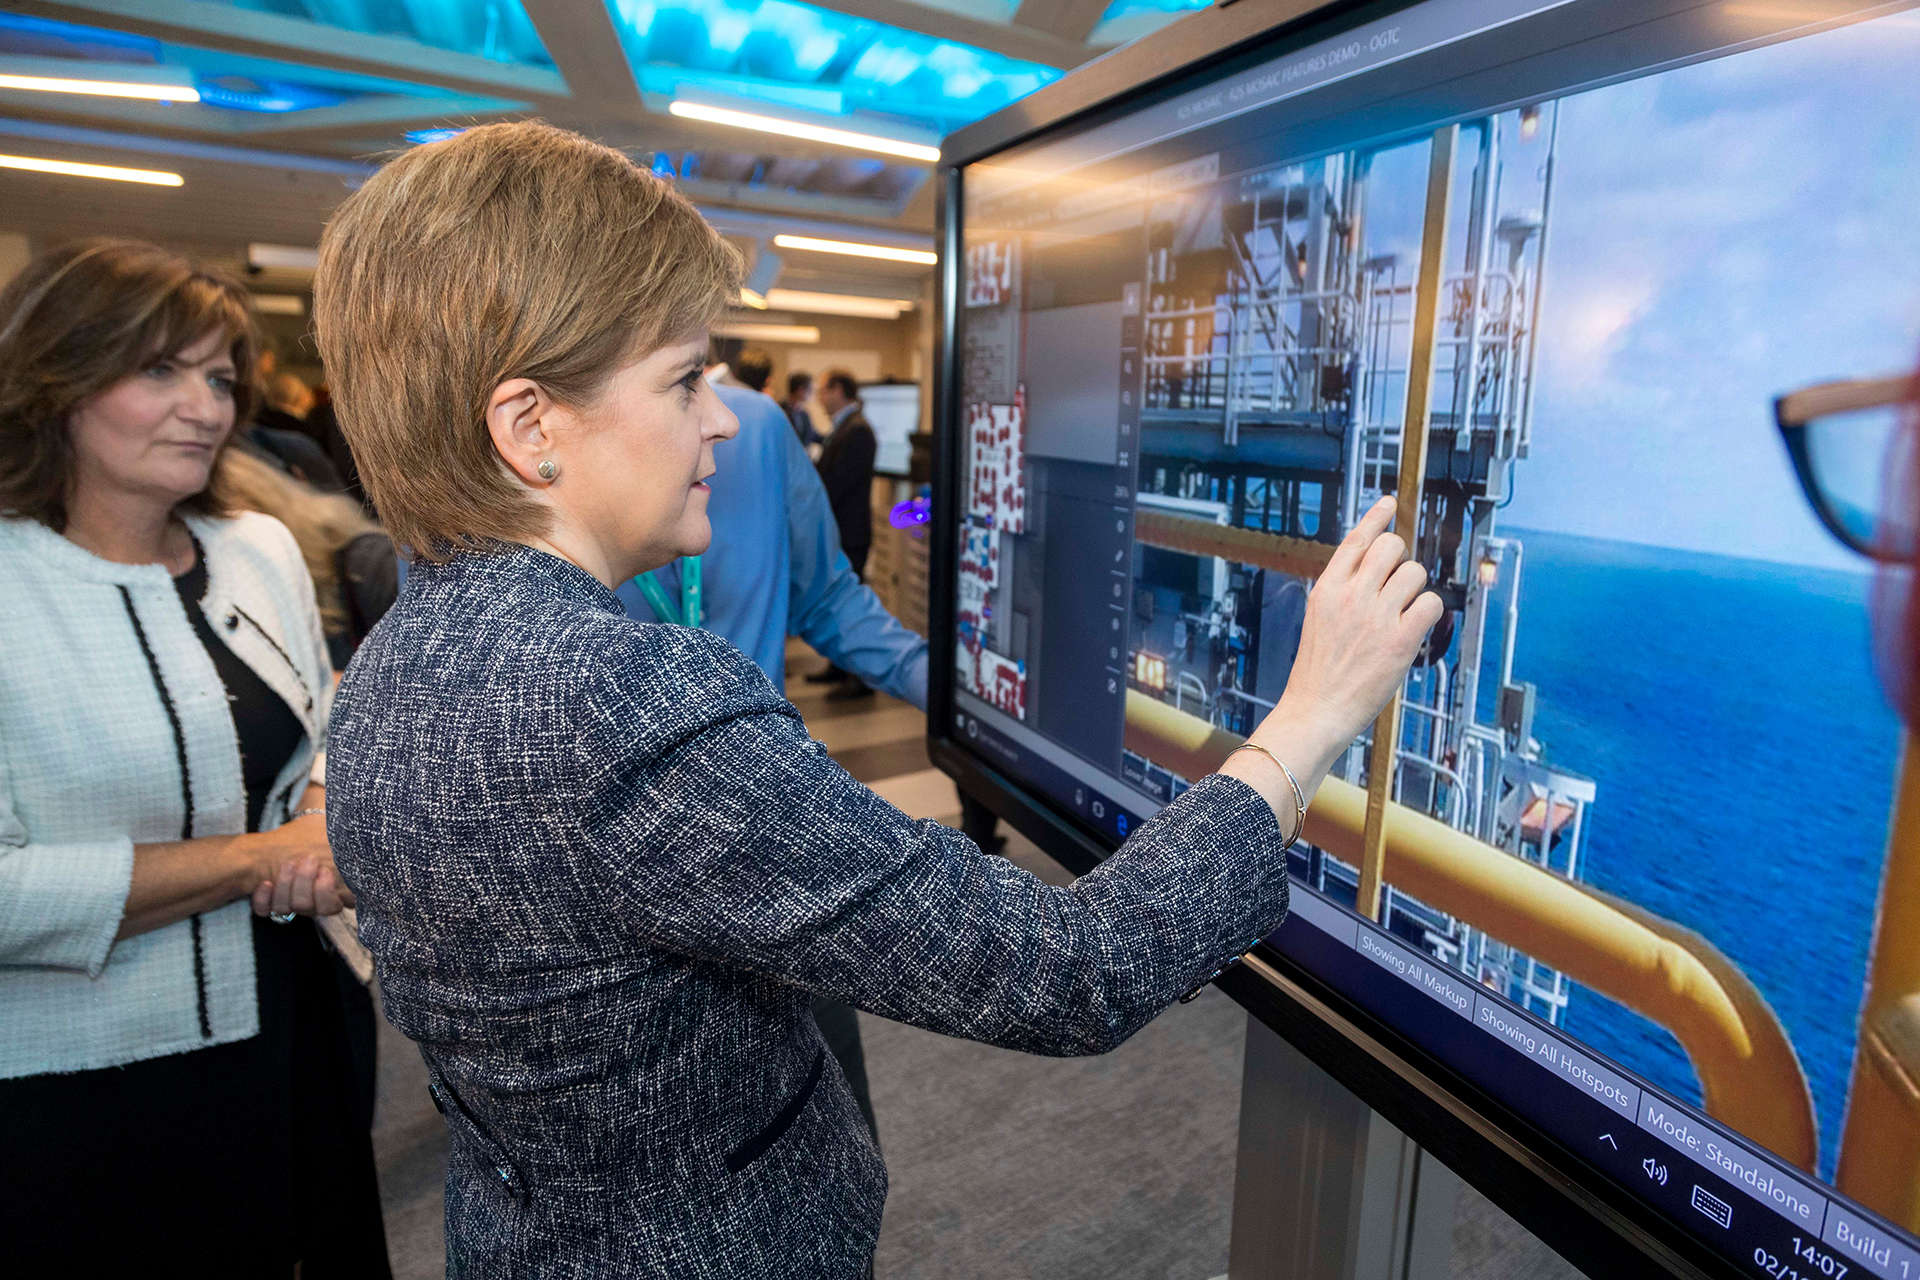 Forward-looking. Nicola Sturgeon, Scotland's first minister, looks into the future. (Photo: Oil & Gas Technology Centre)